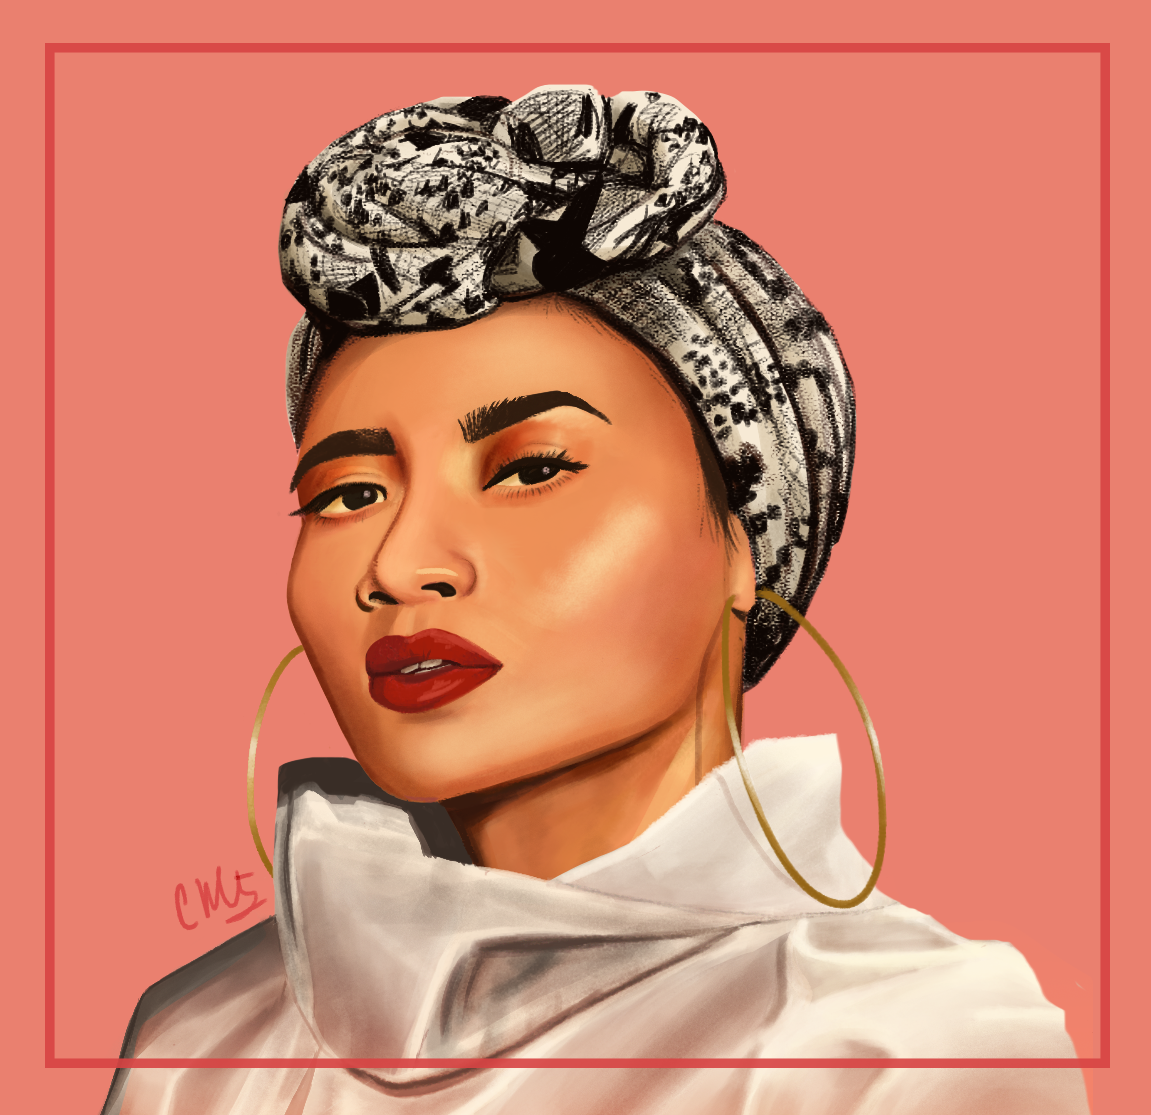 Fan art portrait of Yuna Zarai, based on a photo on her Instagram.